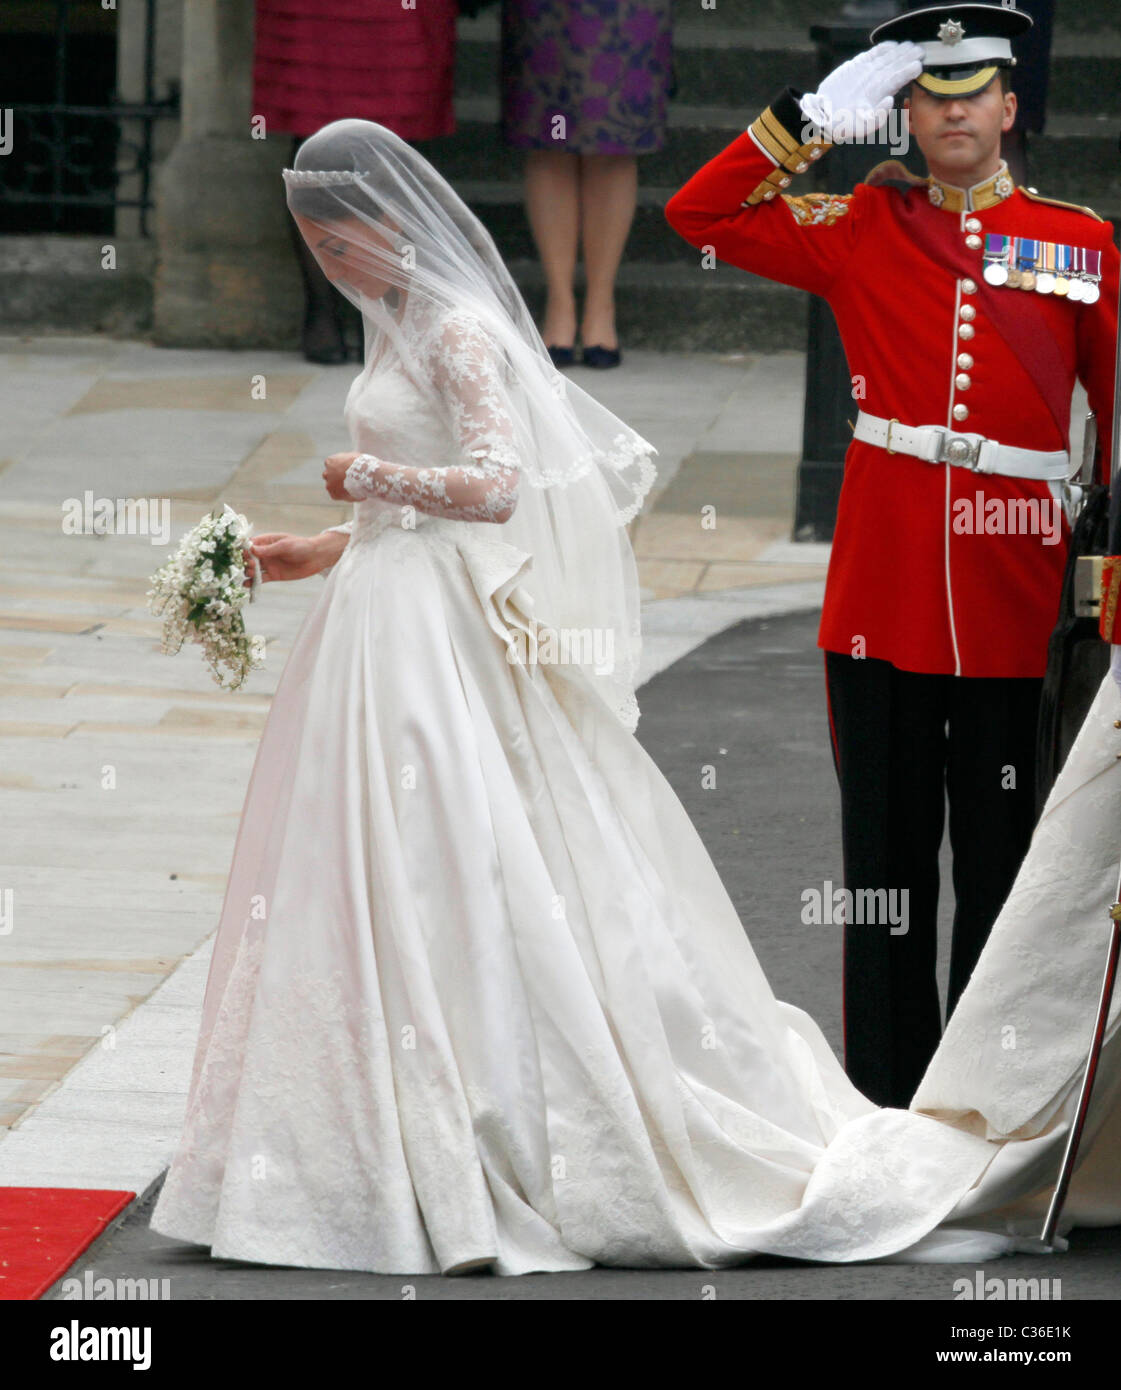 Kate Middleton Wedding Stock Photos & Kate Middleton Wedding Stock ...